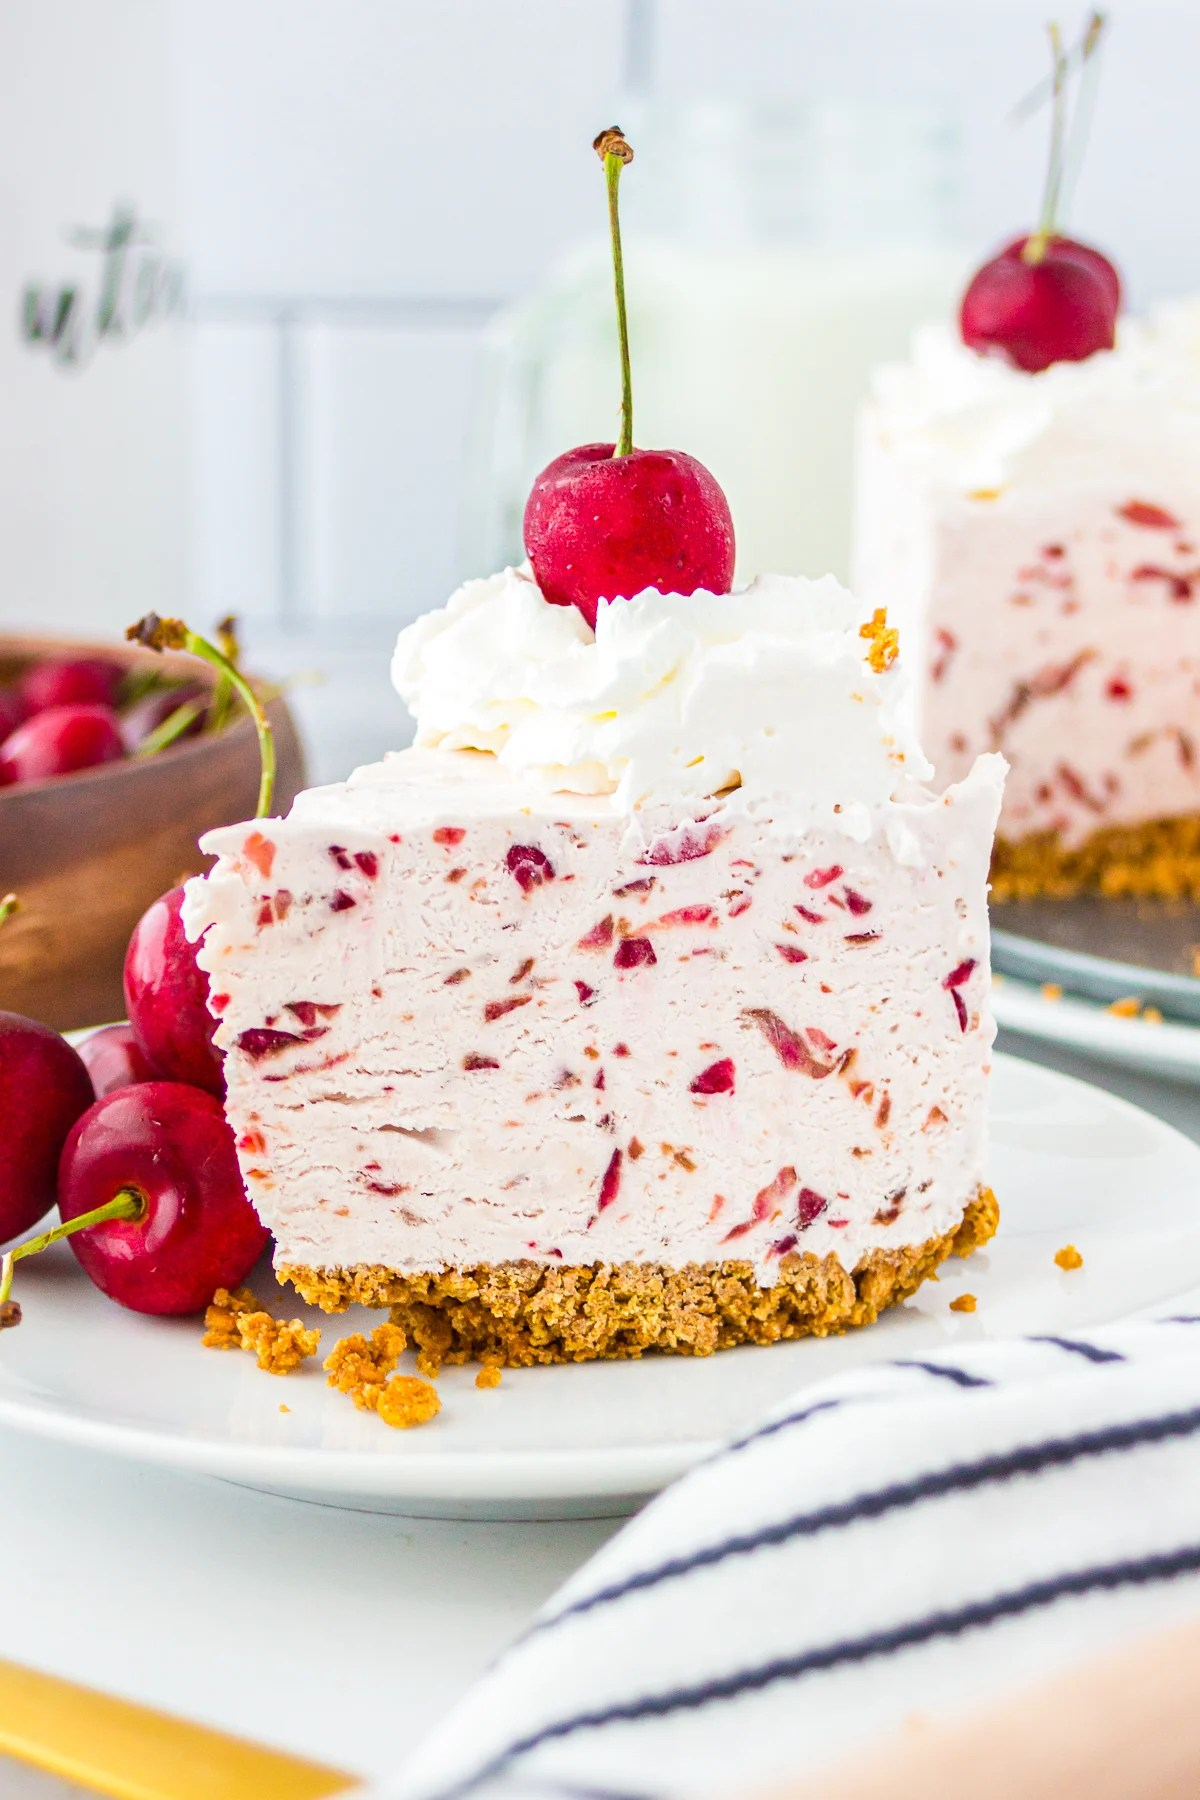 Slice of No Bake Cherry Cheesecake on white plate topped with whipped cream and a cherry